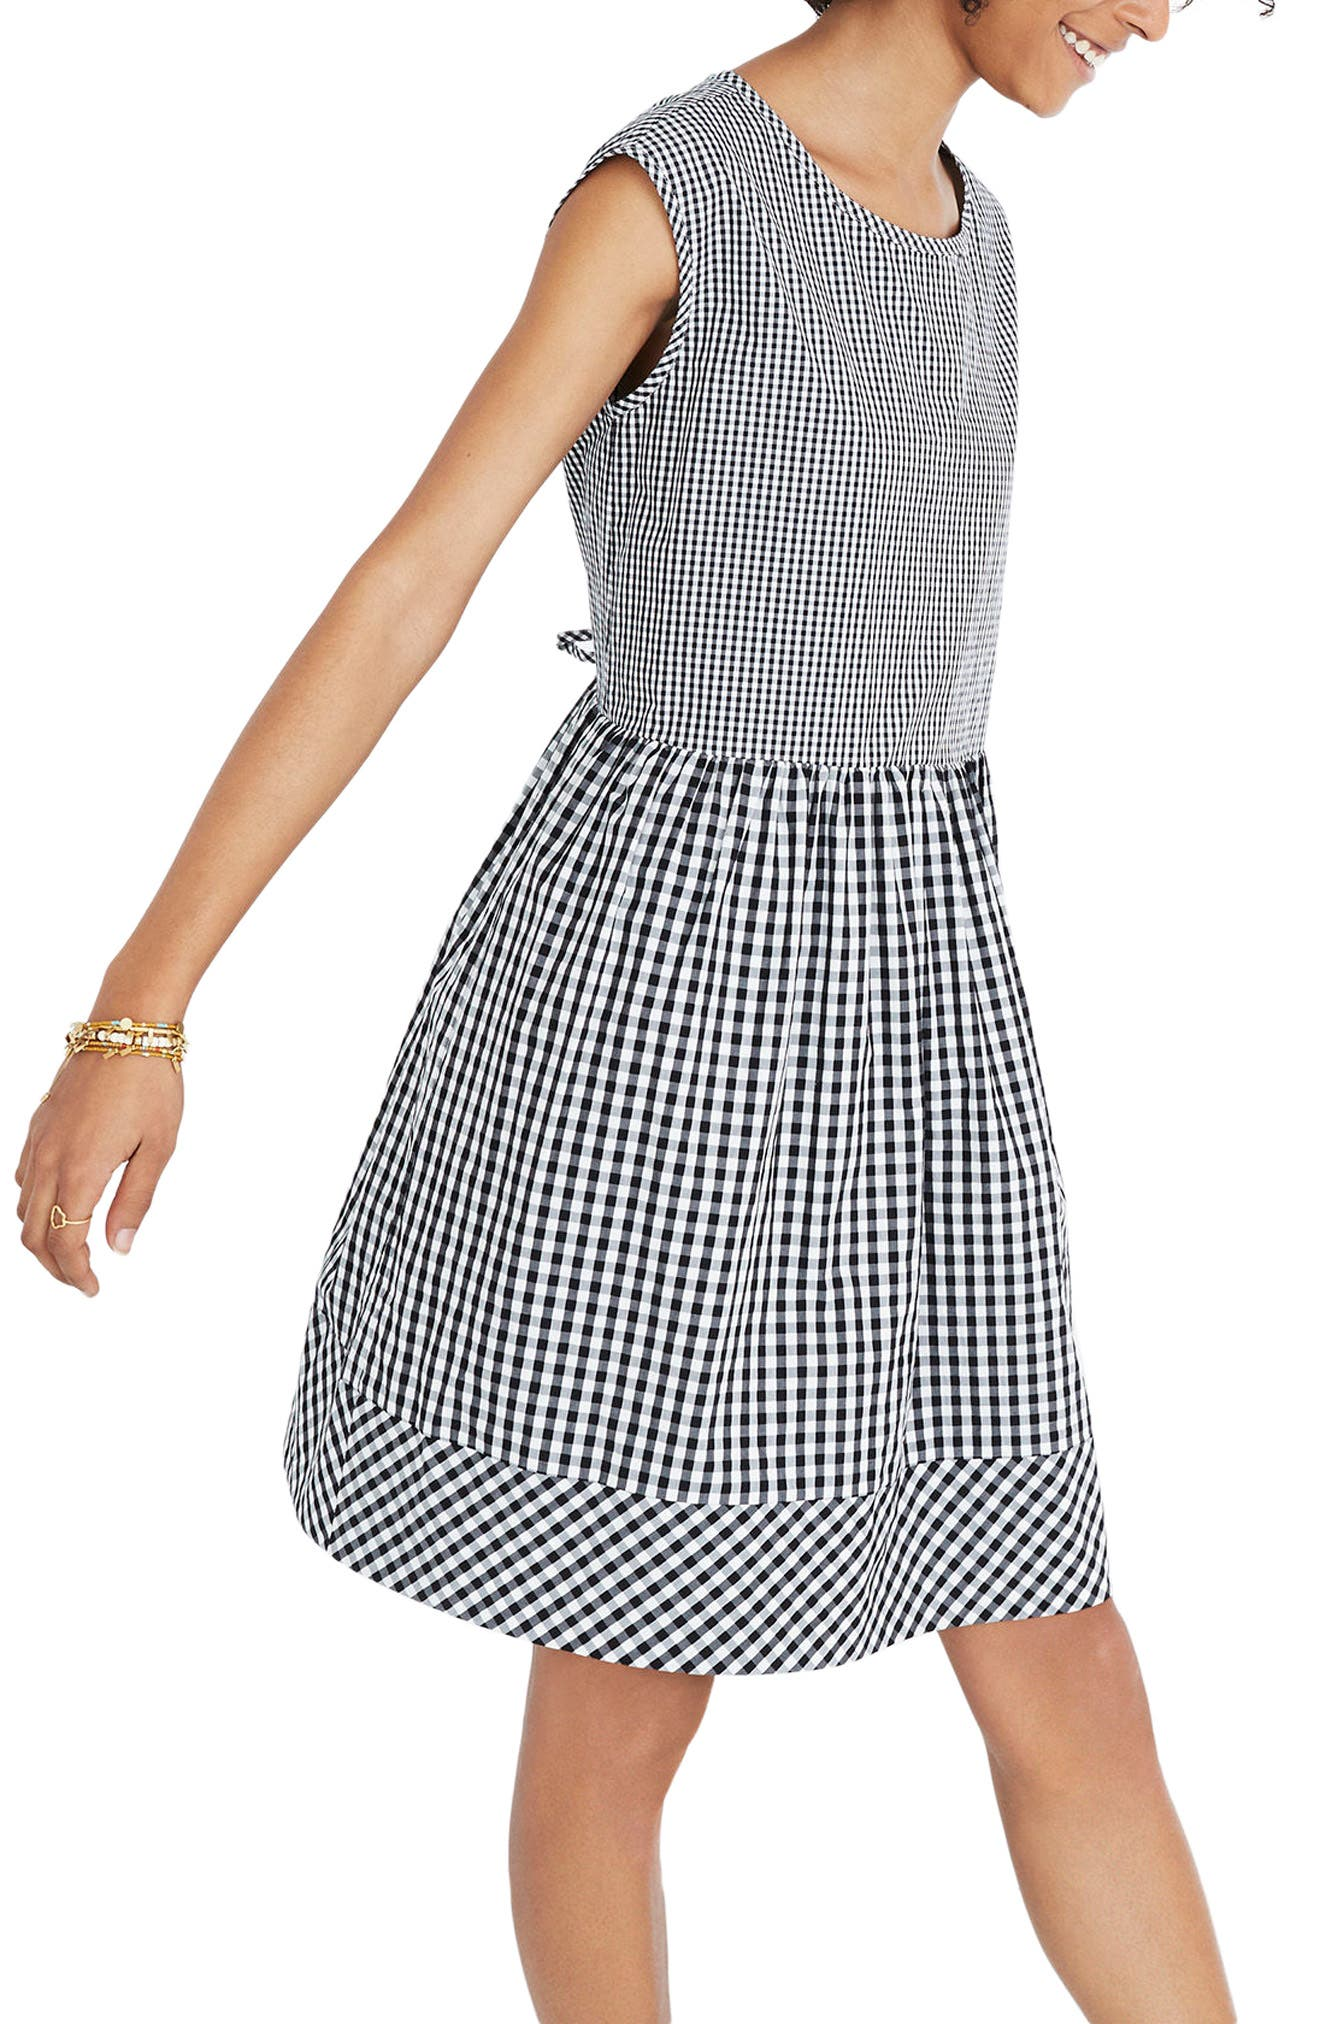 Gingham Tie Back Minidress,                             Alternate thumbnail 3, color,                             009